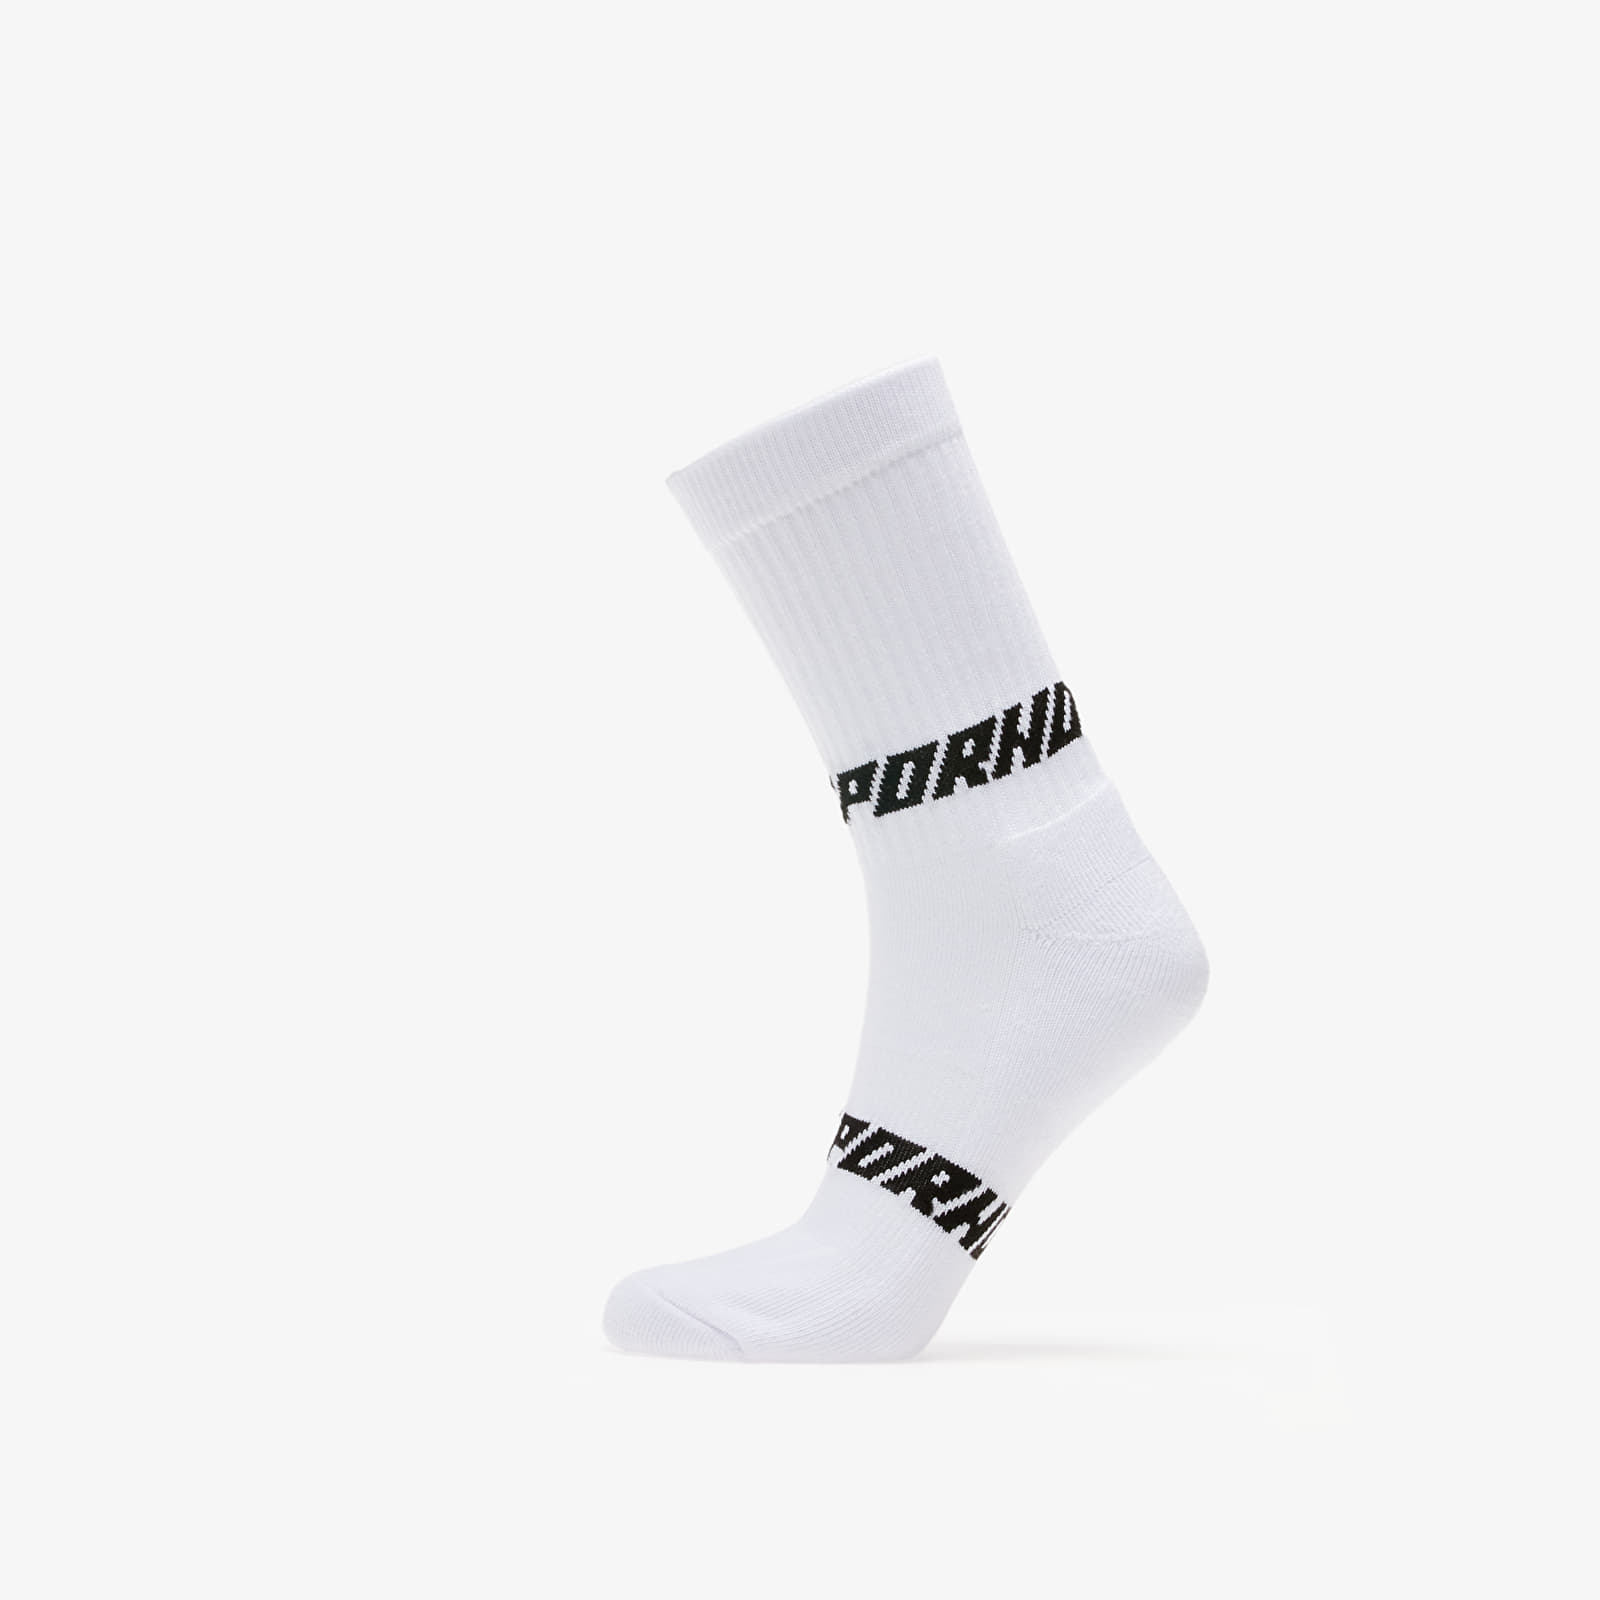 Socks LIFE IS PORNO Rider Sox White/ Black